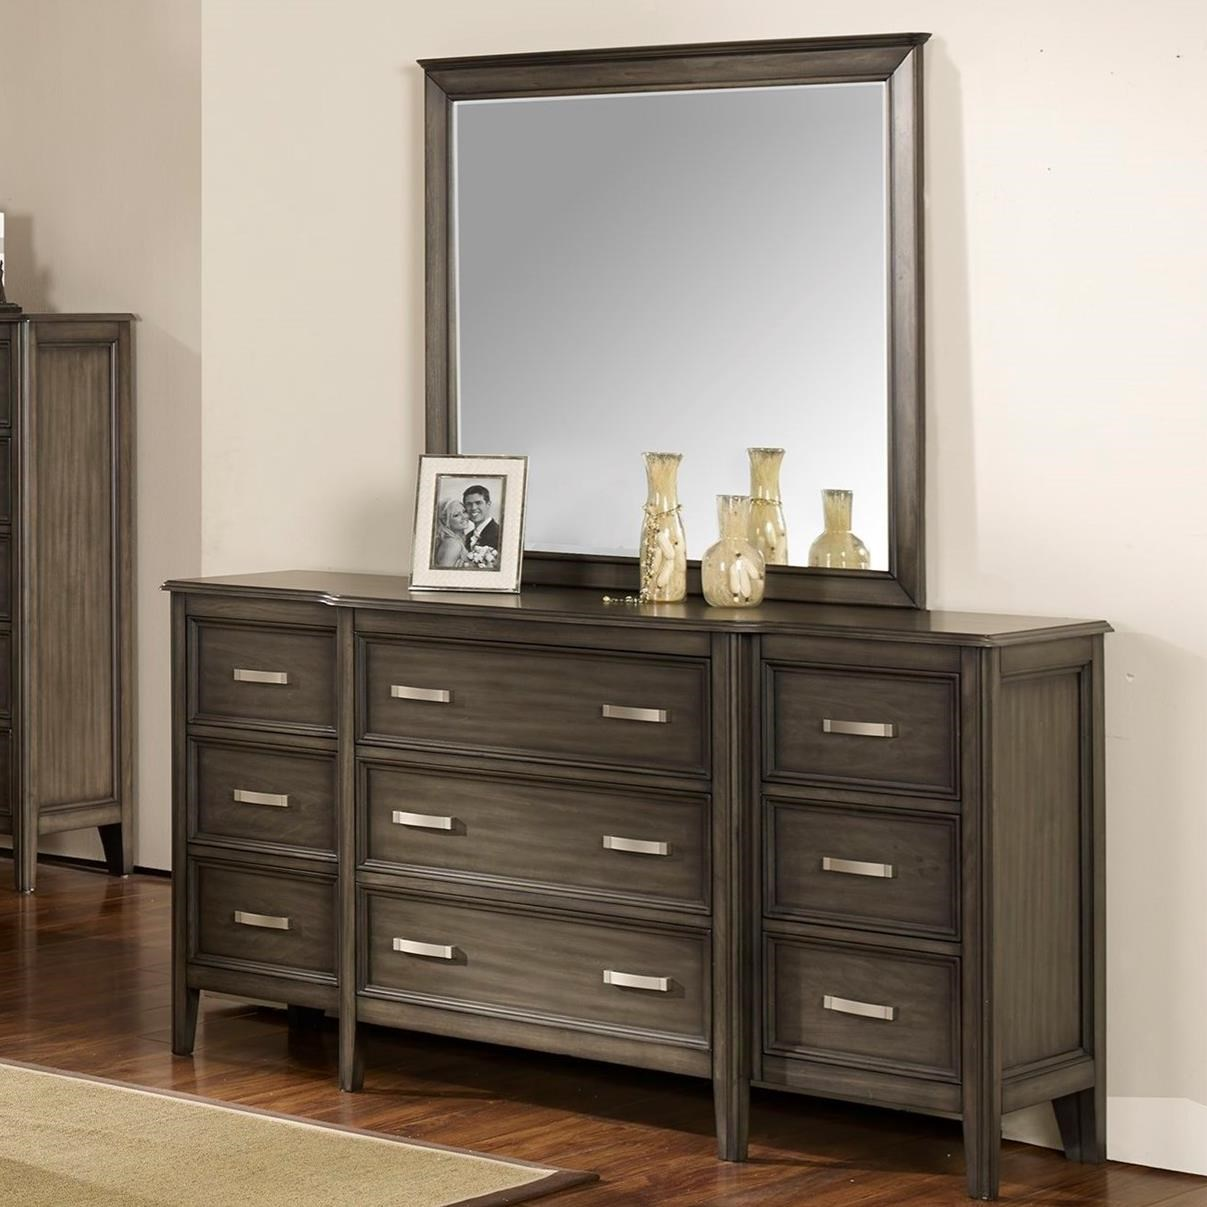 Richfield Smoke Dresser and Mirror by New Classic at Beds N Stuff